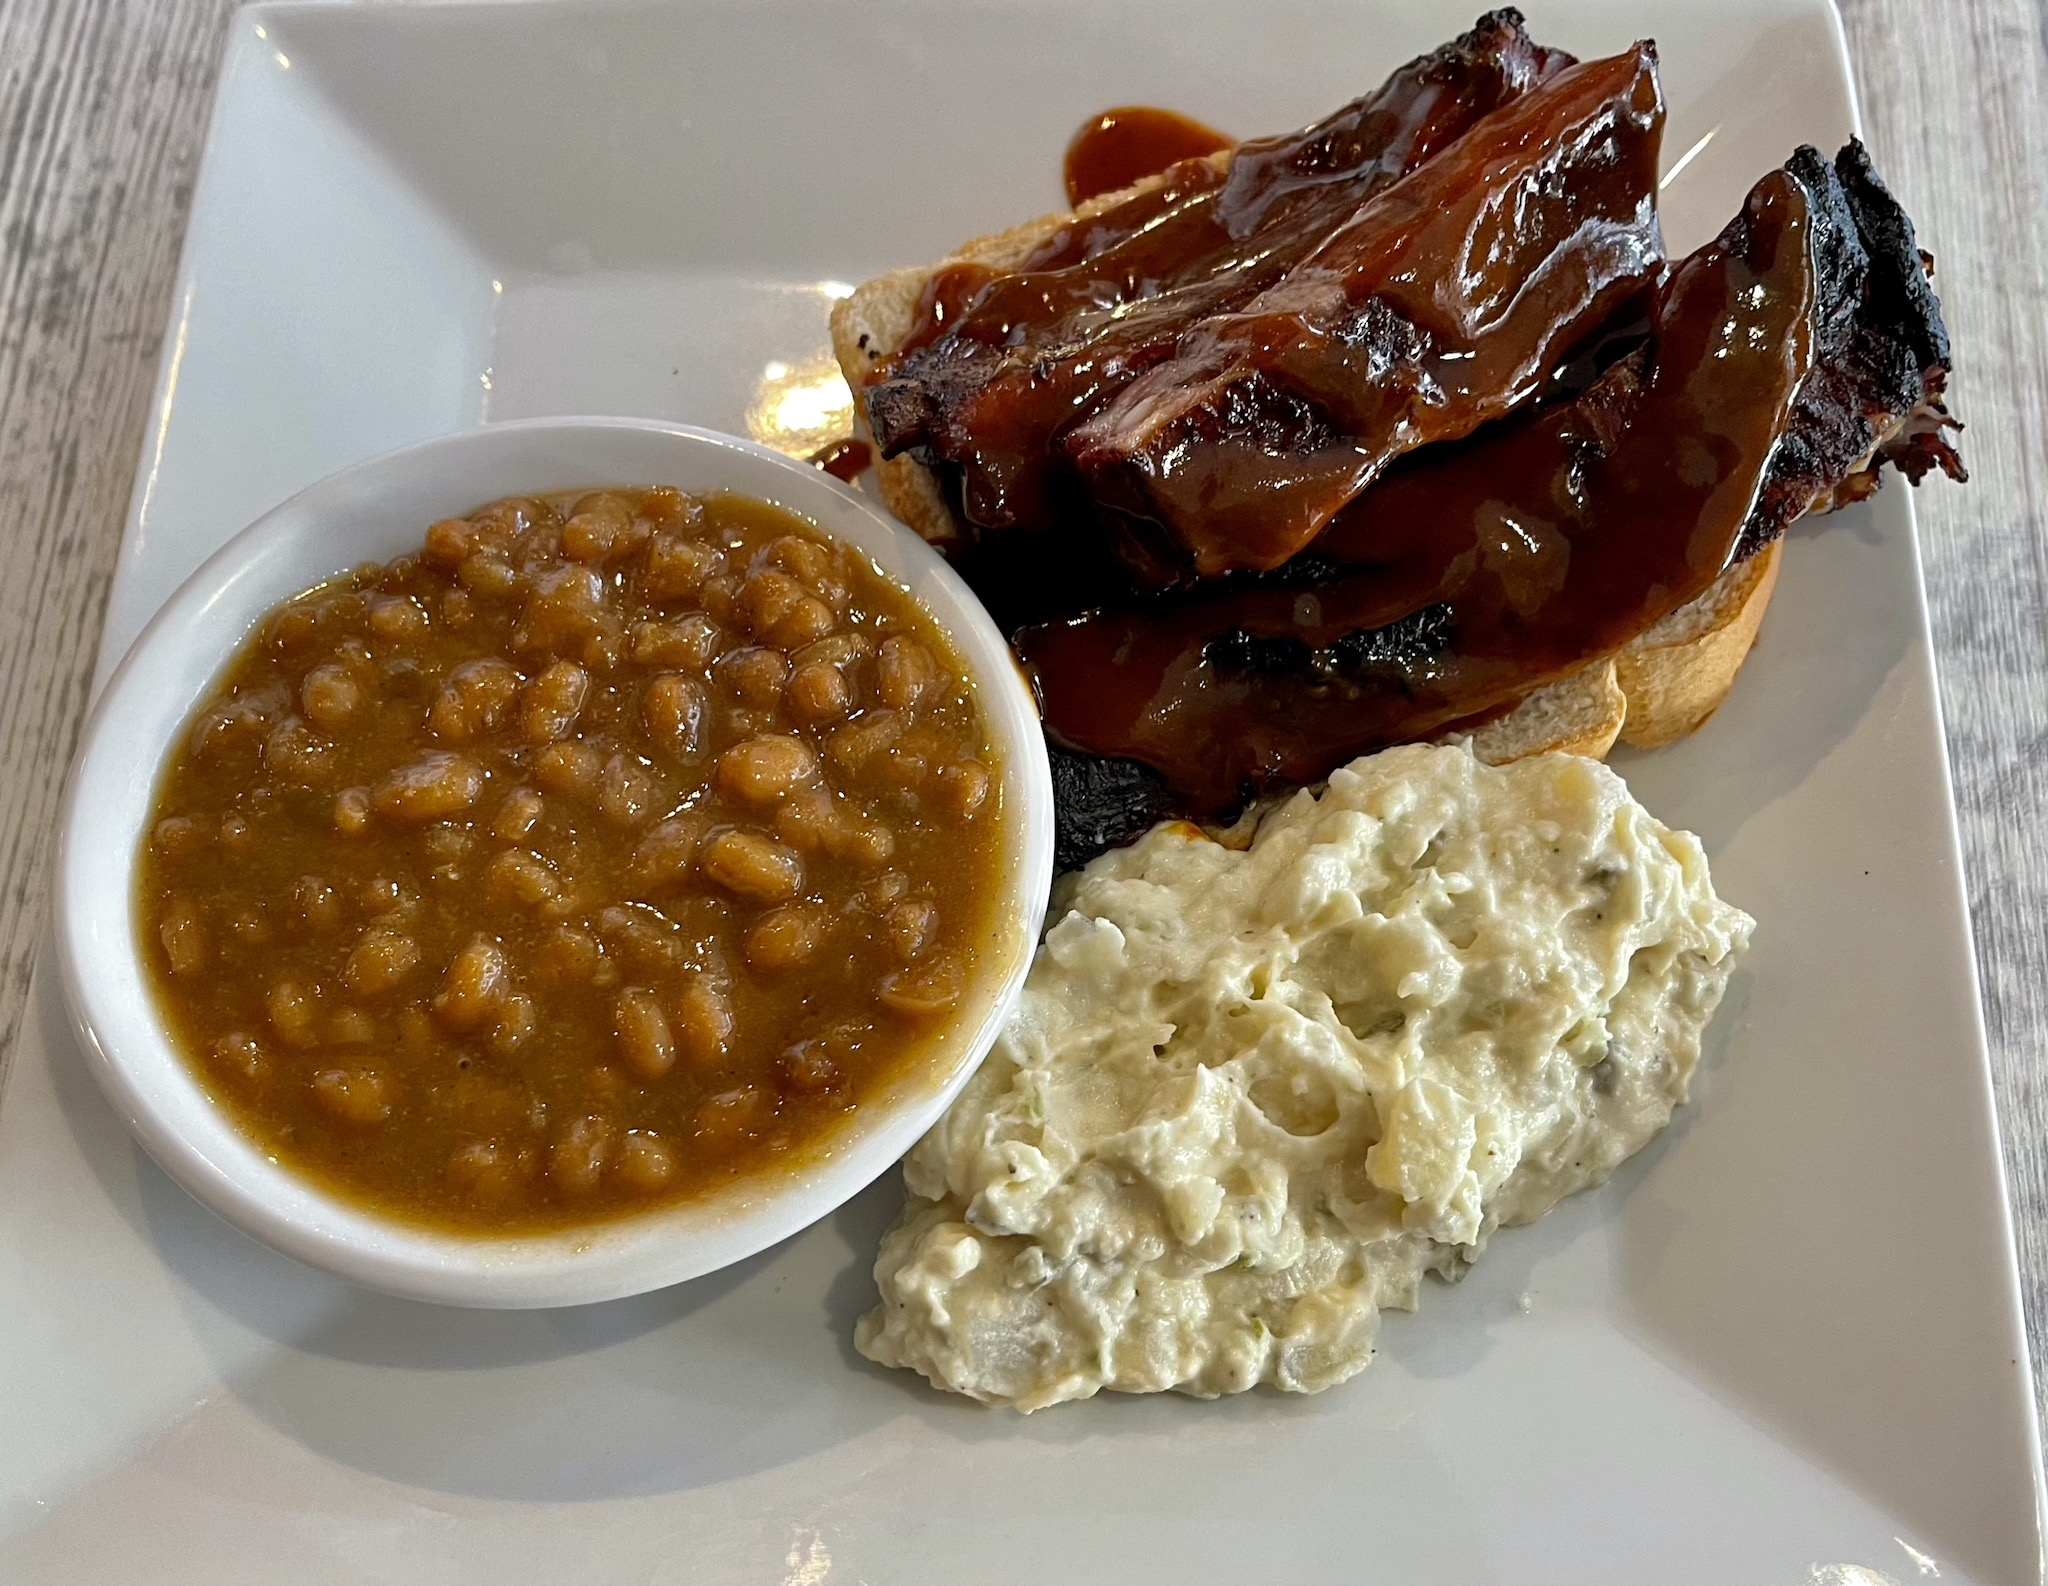 Betterway BBQ Ribs Platter with Baked Beans and Potato Salad